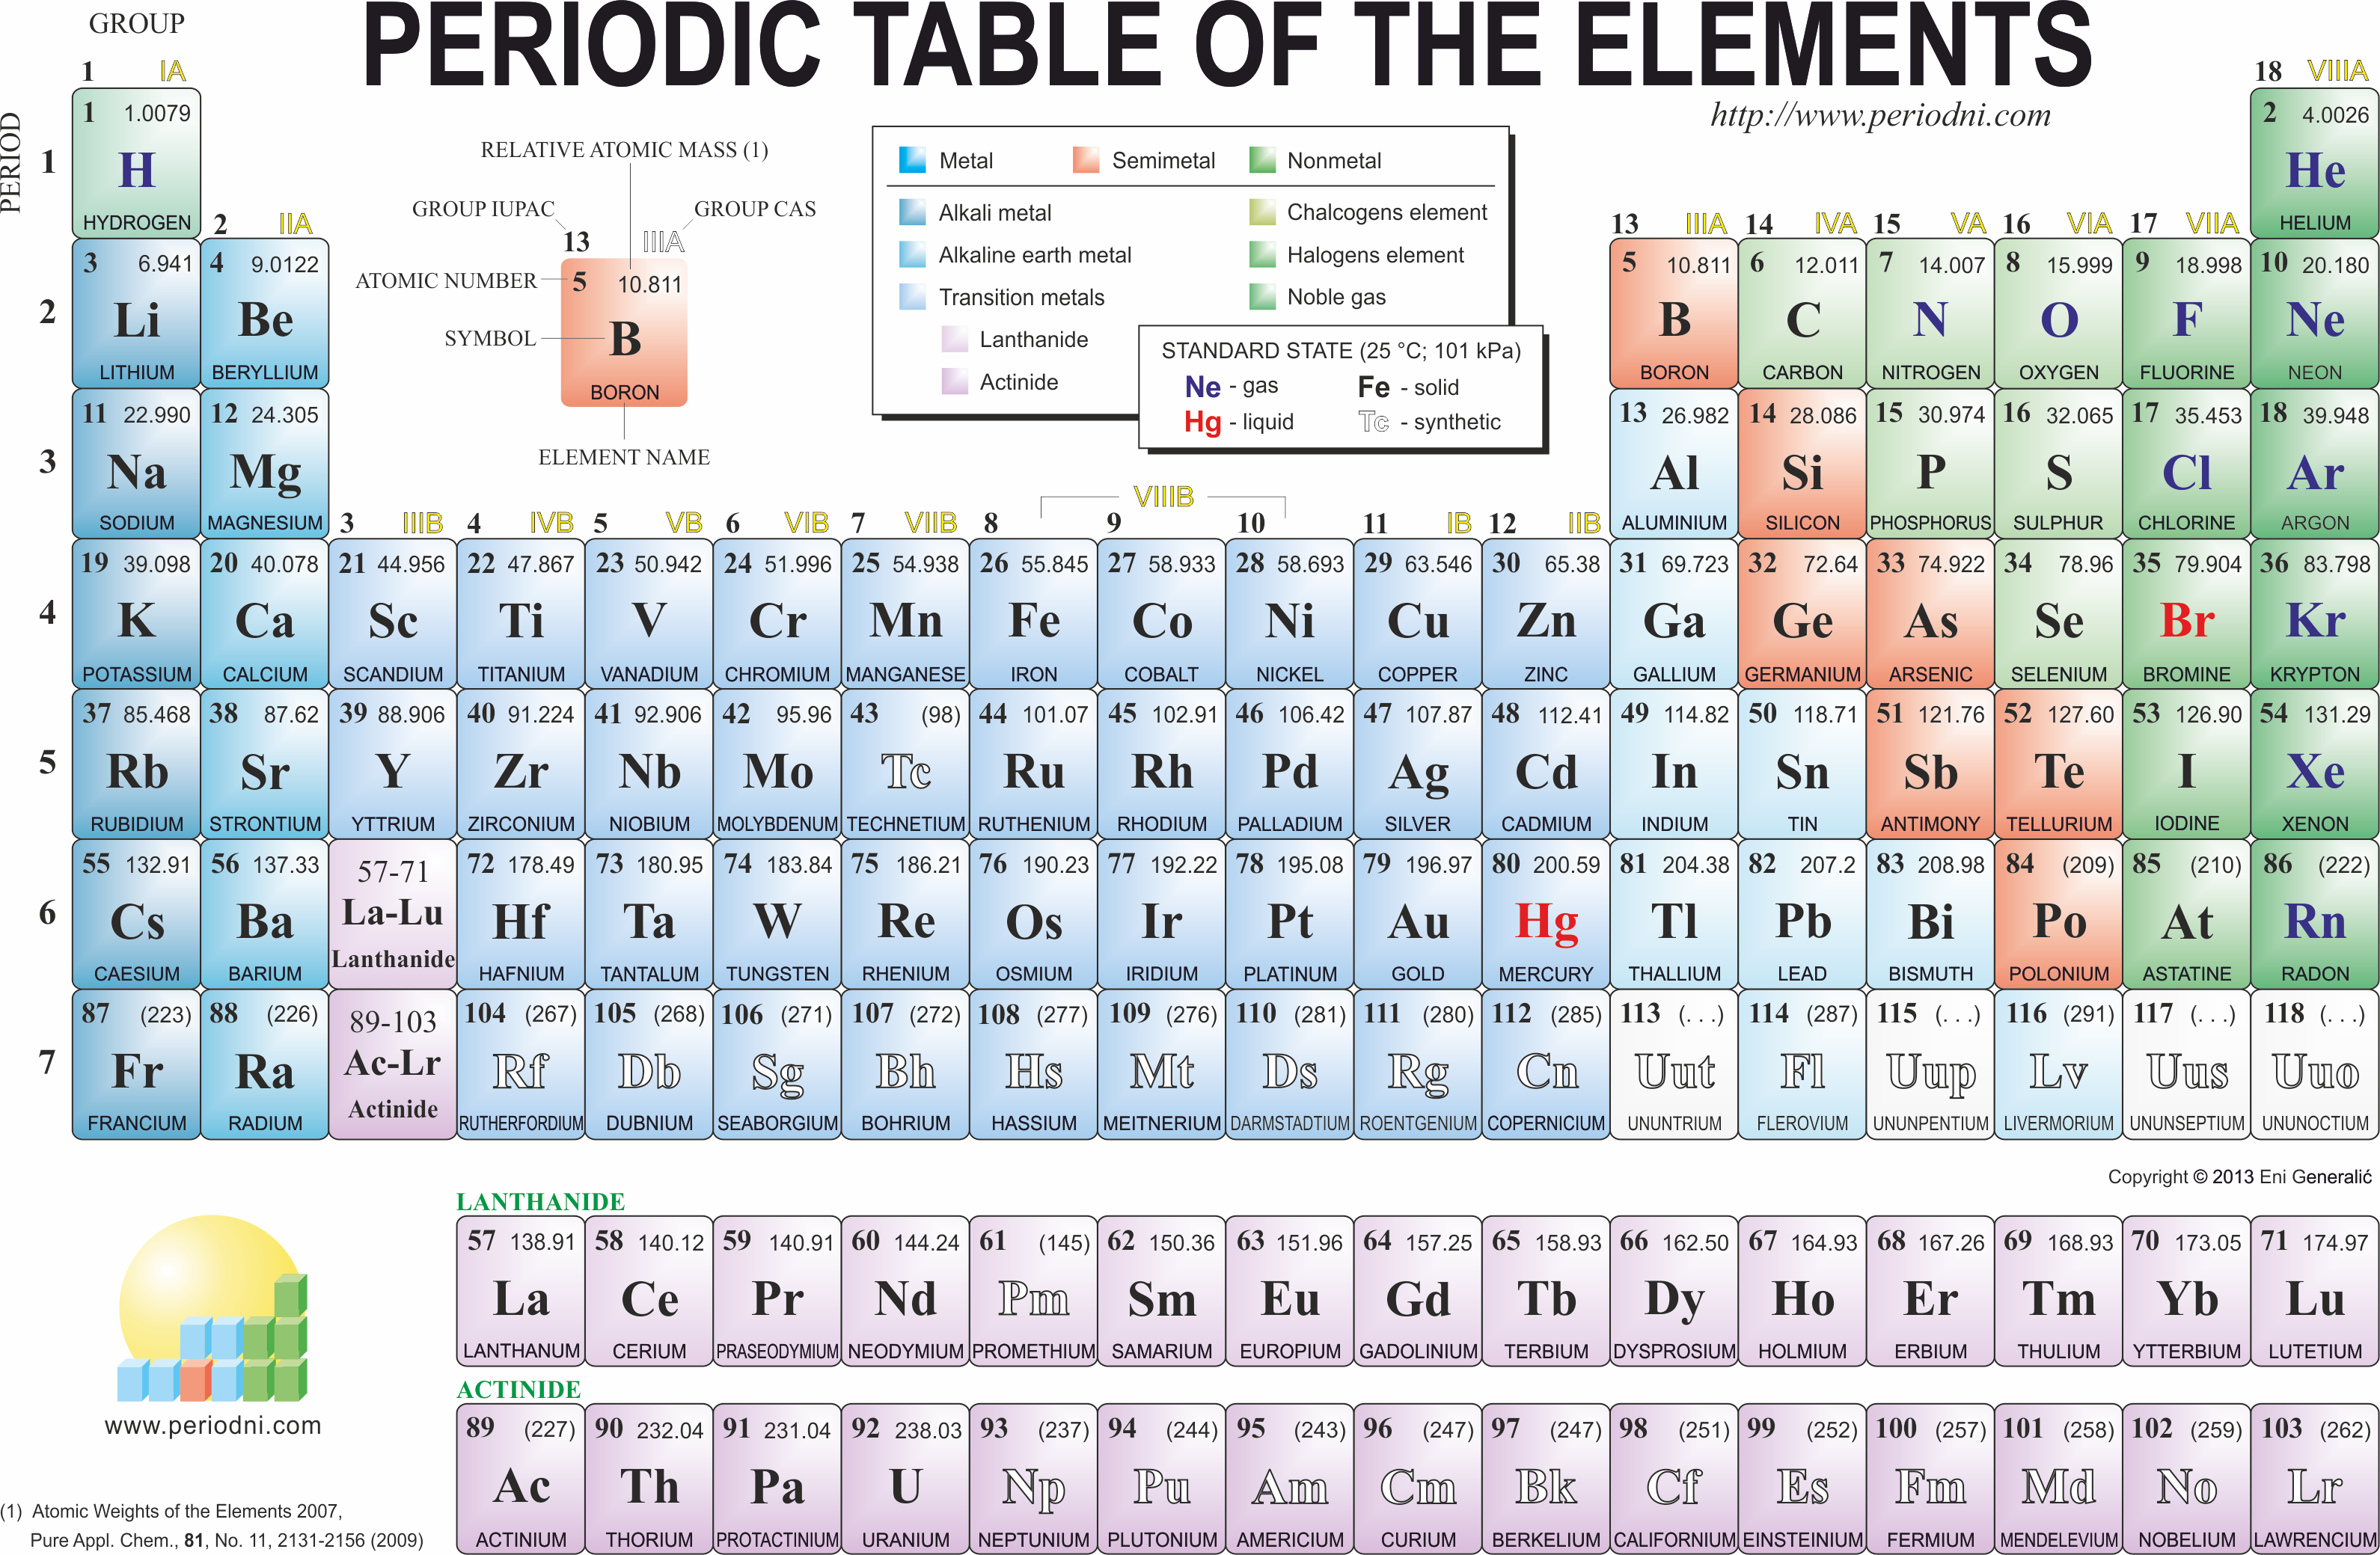 Periodic table of the elements chemistry dictionary glossary periodic table of the elements gamestrikefo Choice Image